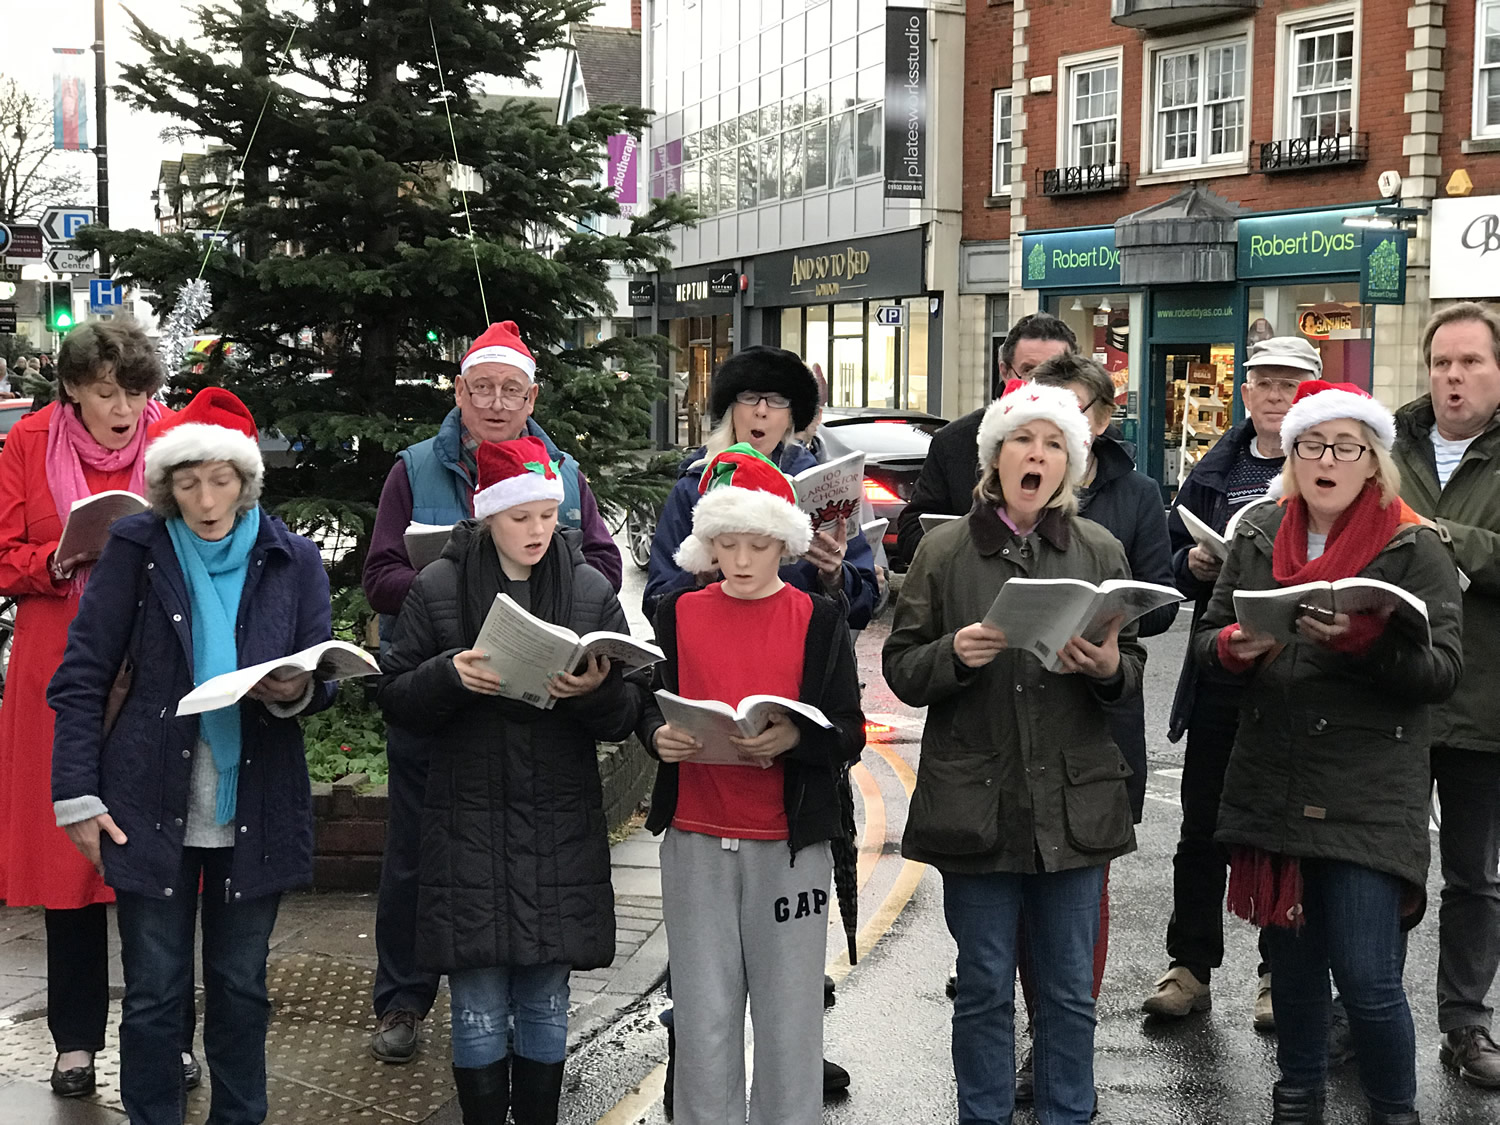 St James Church Choir singing at Weybridge Christmas Market